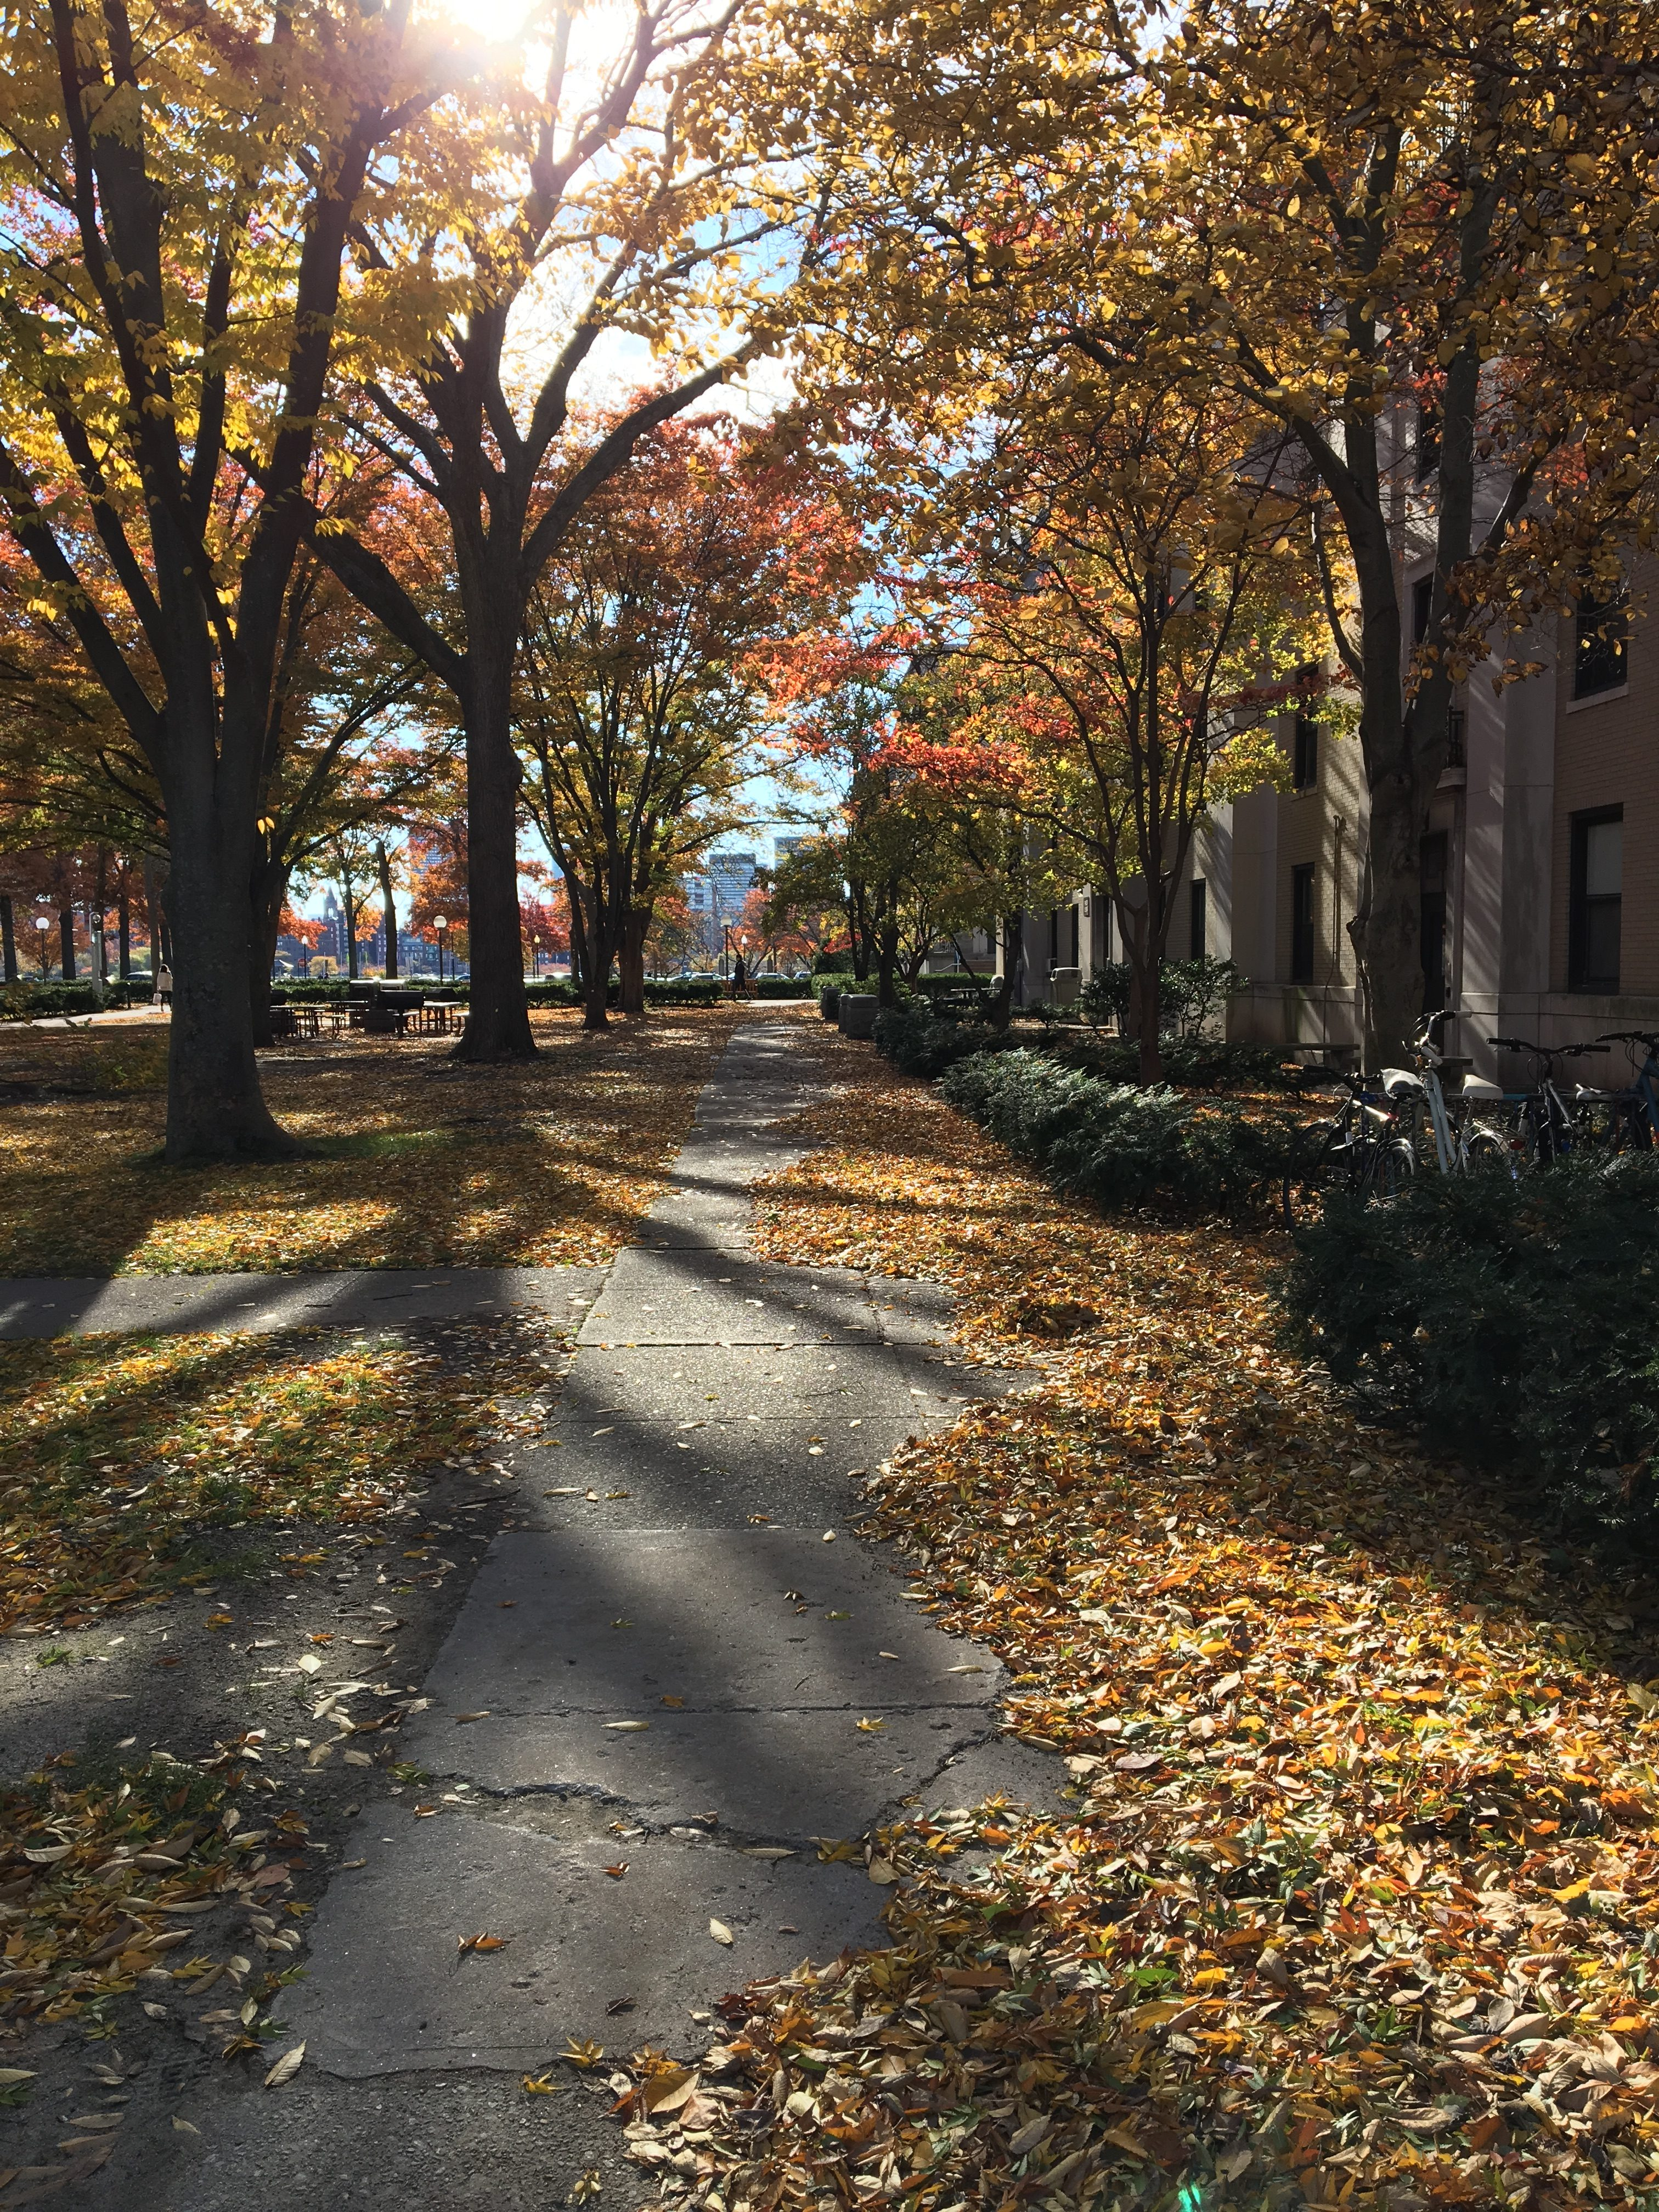 The middle of the East Campus courtyard. On either side of the path are bright leaves, and the sun can be seen shining through the mixed-colour trees.